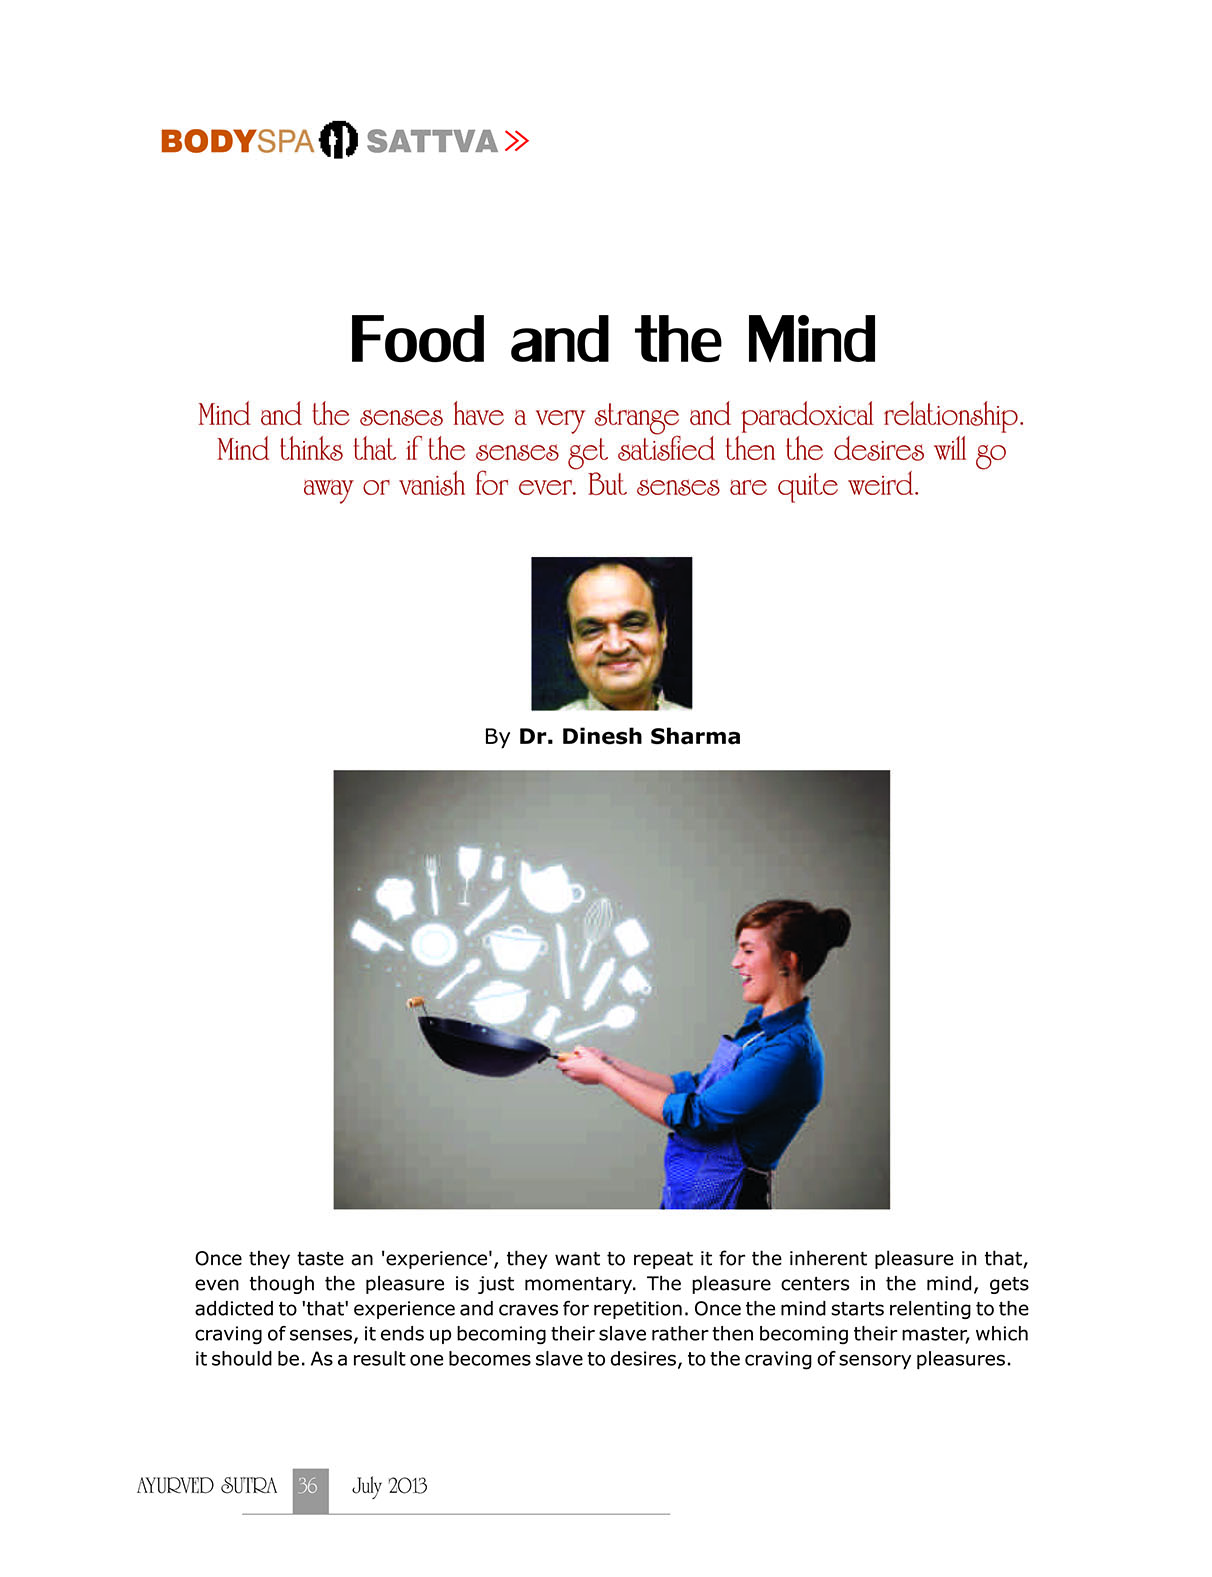 Ayurvedsutra Vol 01 issue 03 038 - Food and the Mind